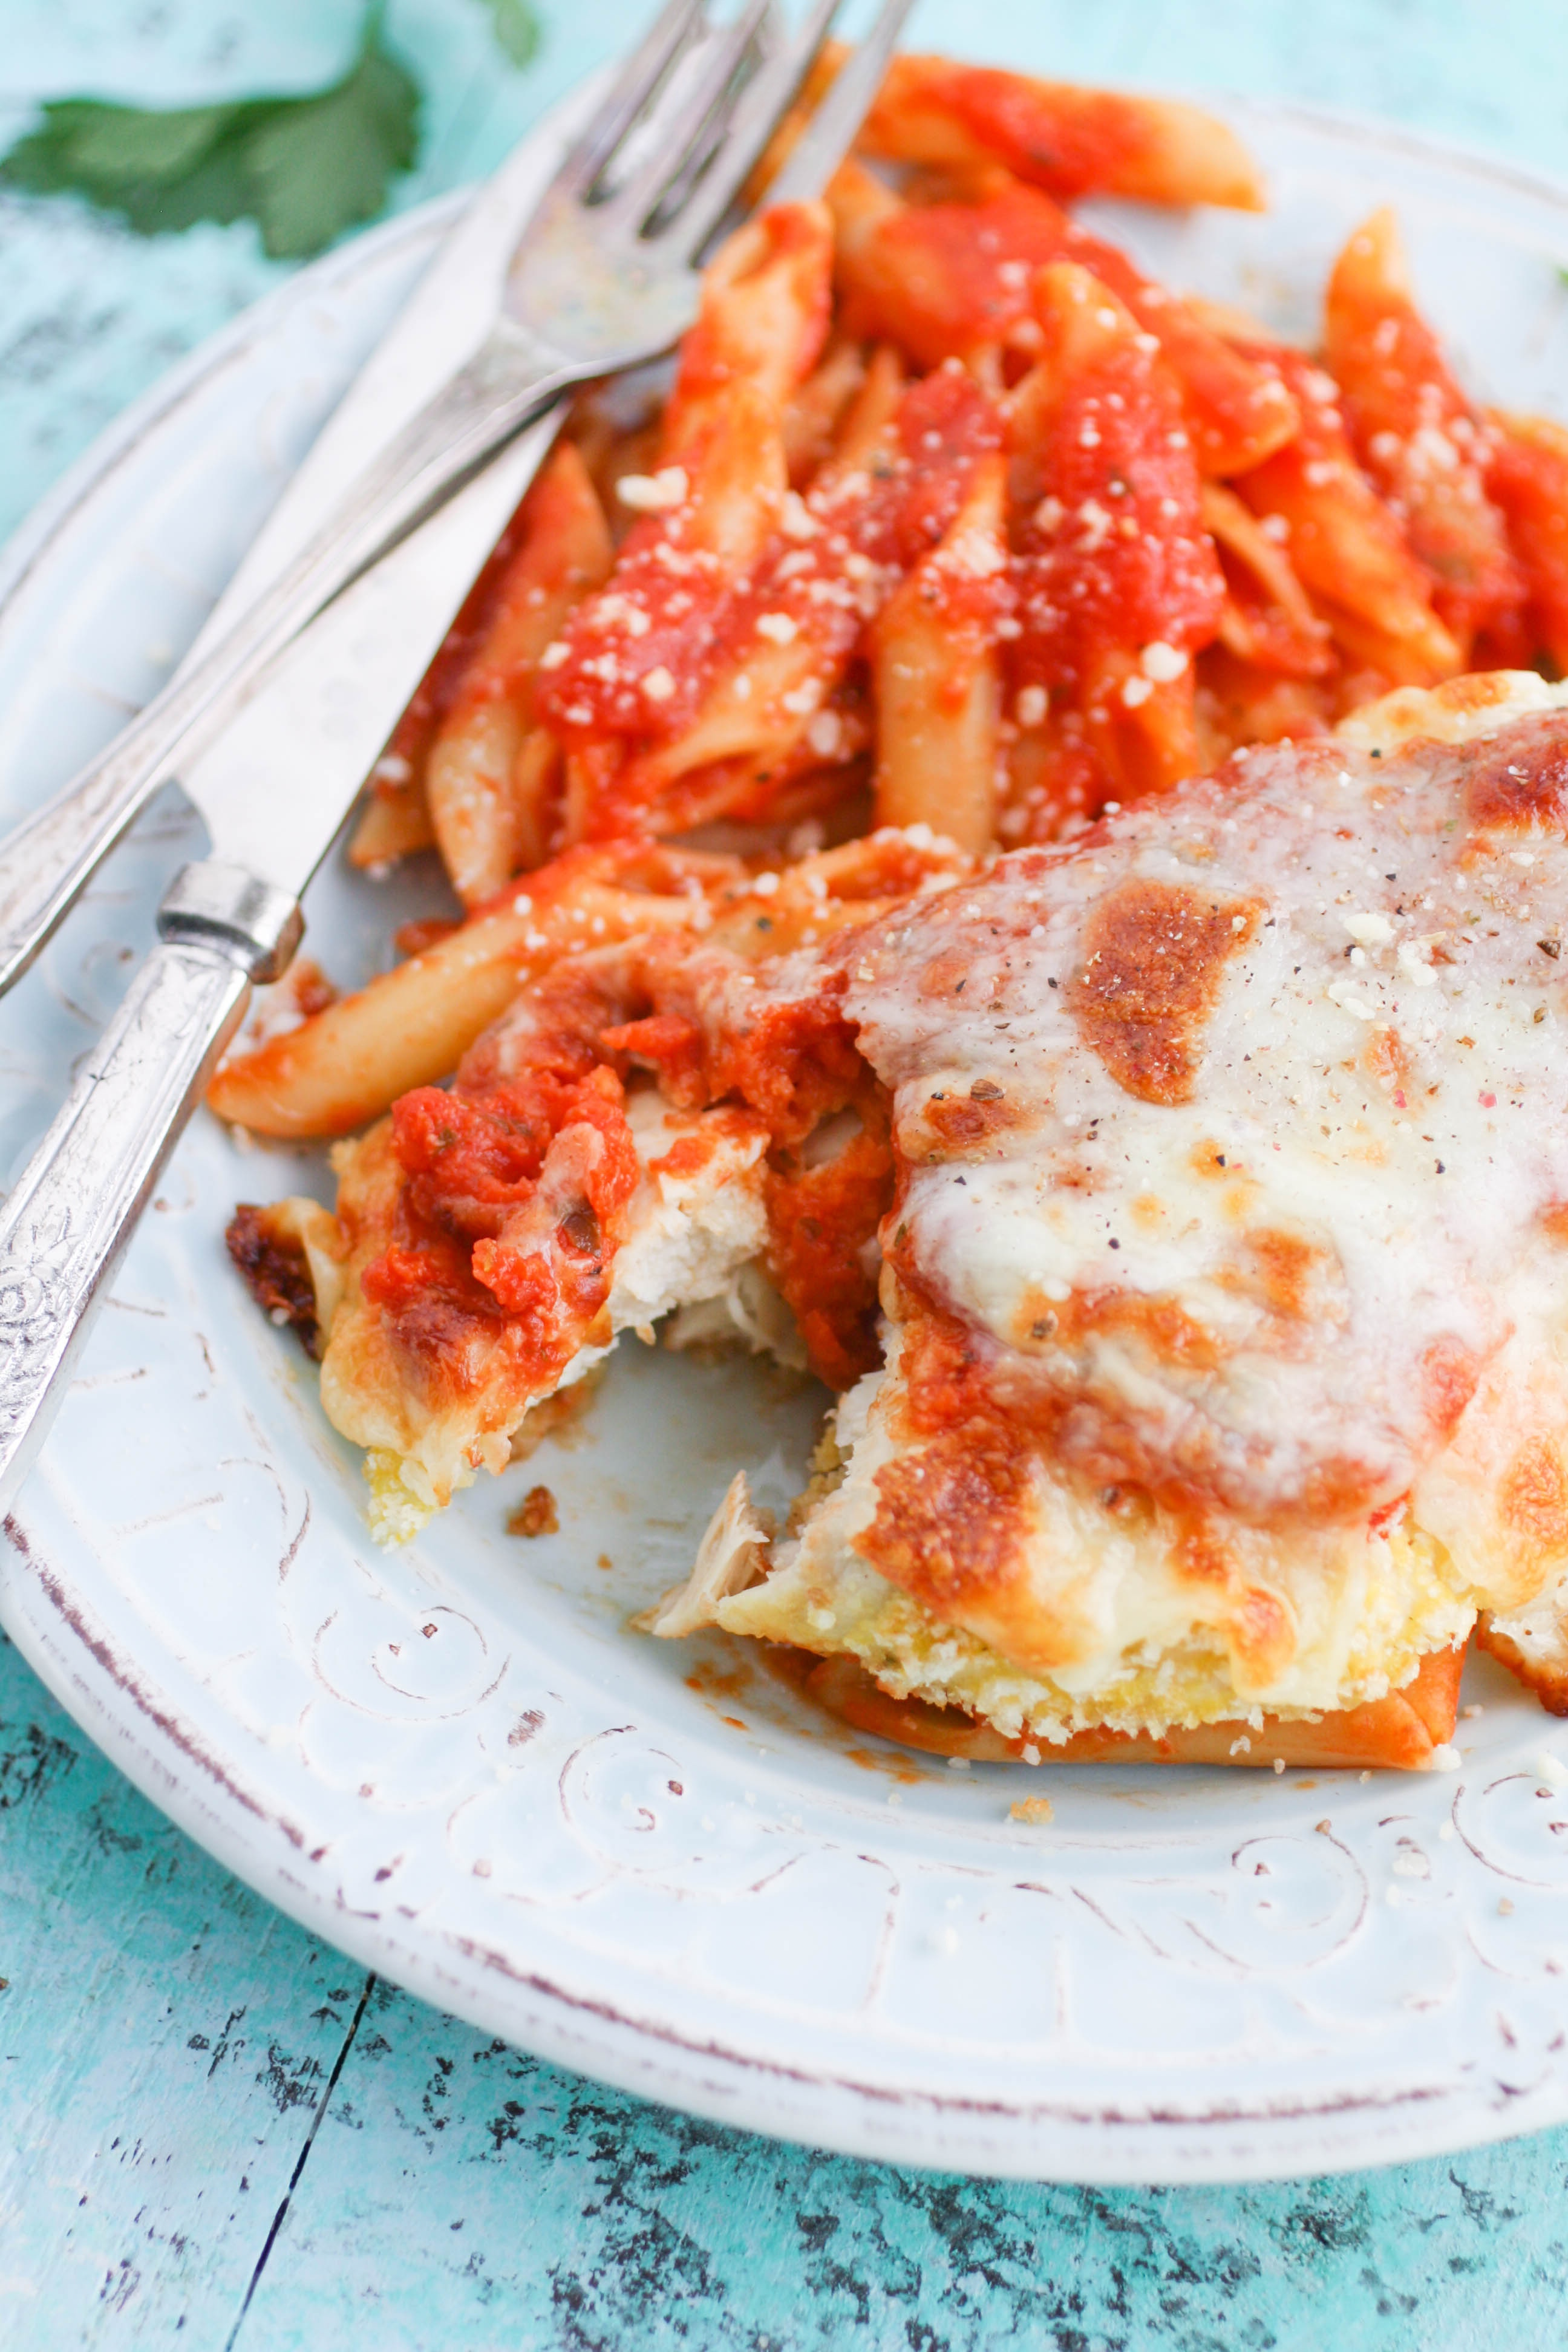 Classic Baked Chicken Parmesan is a great dish to serve along with your favorite pasta! Classic Baked Chicken Parmesan makes a great meal.